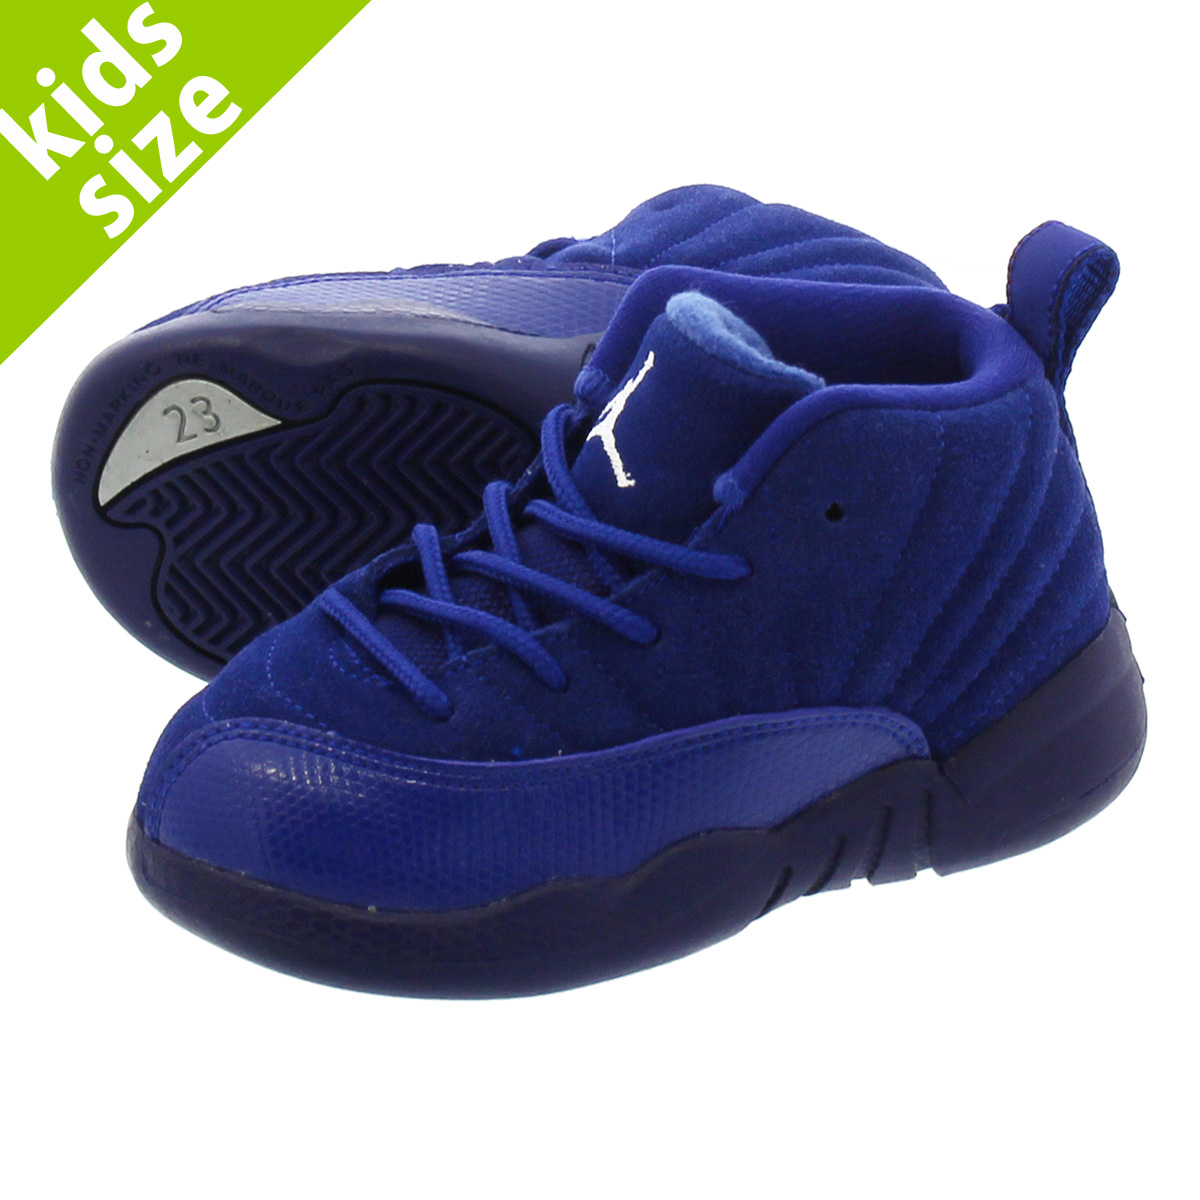 【ベビー サイズ】【8cm-16cm】 NIKE AIR JORDAN 12 RETRO TD ナイキ エア ジョーダン12 レトロ TD DEEP ROYAL BLUE/METALLIC SILVER/WHITE 850000-400